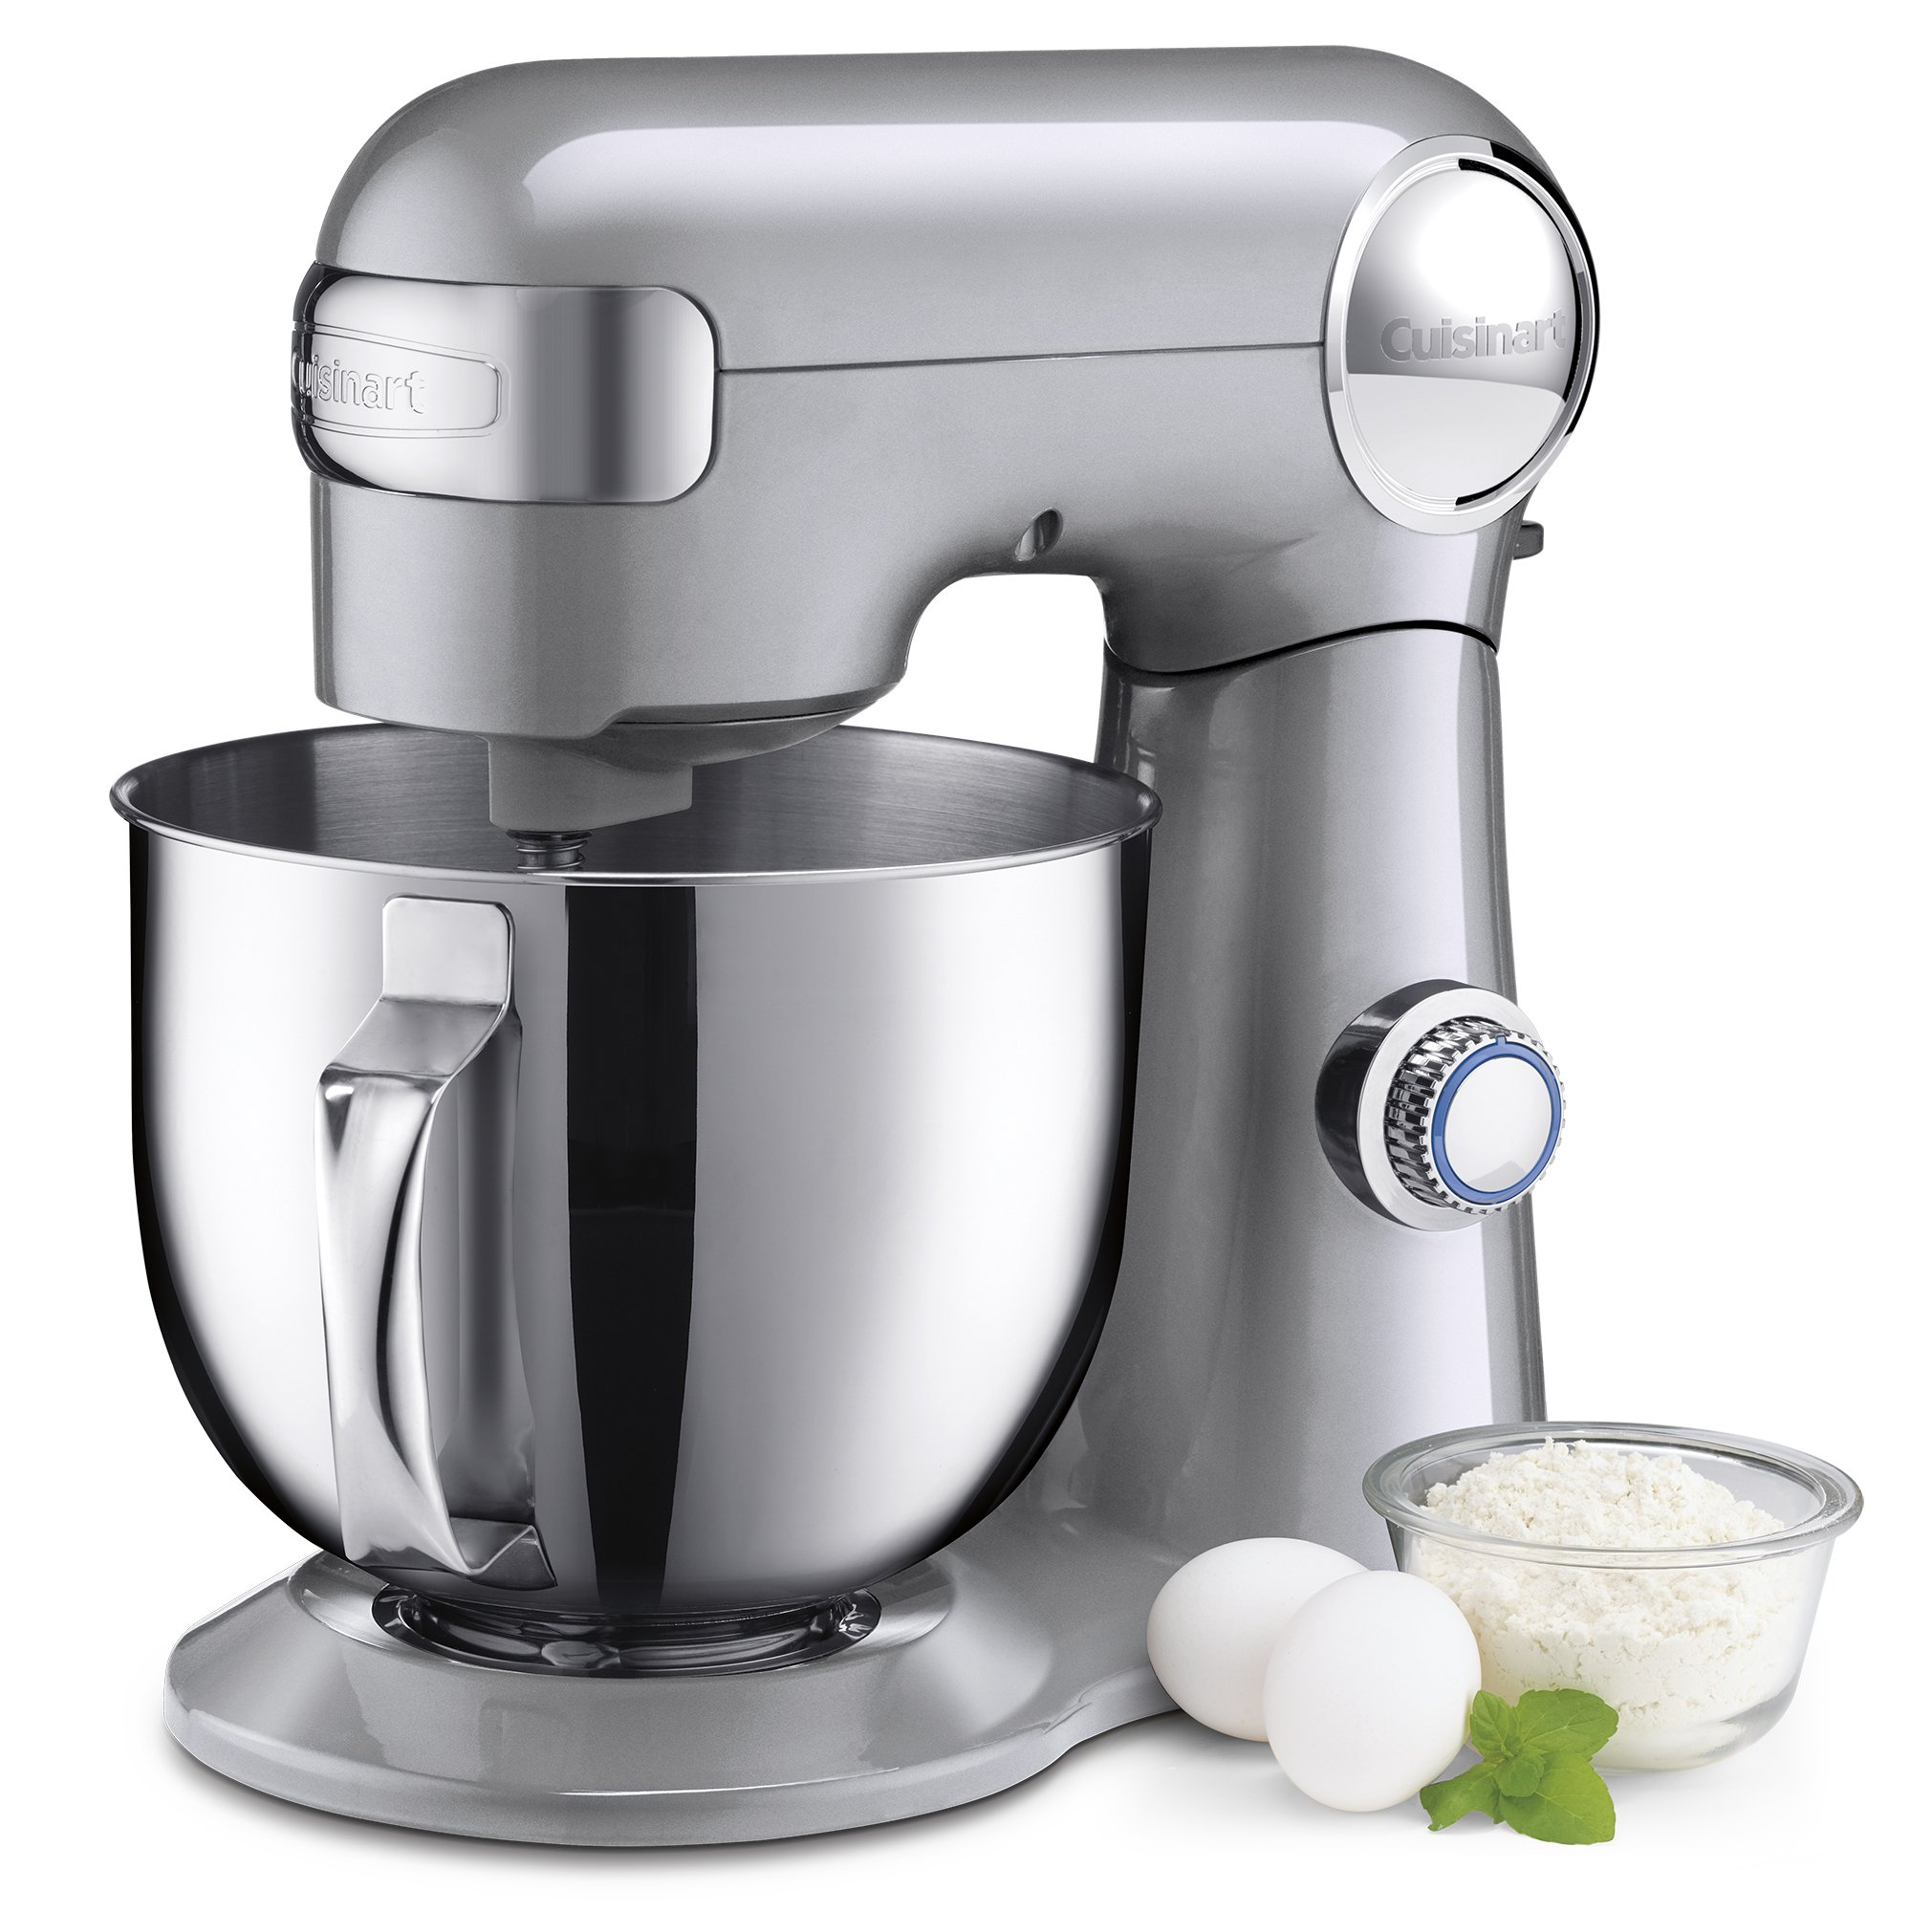 Cuisinart SM-50BC 5.5-Quart Stand Mixer, Brushed Chrome, Silver Lining by Cuisinart